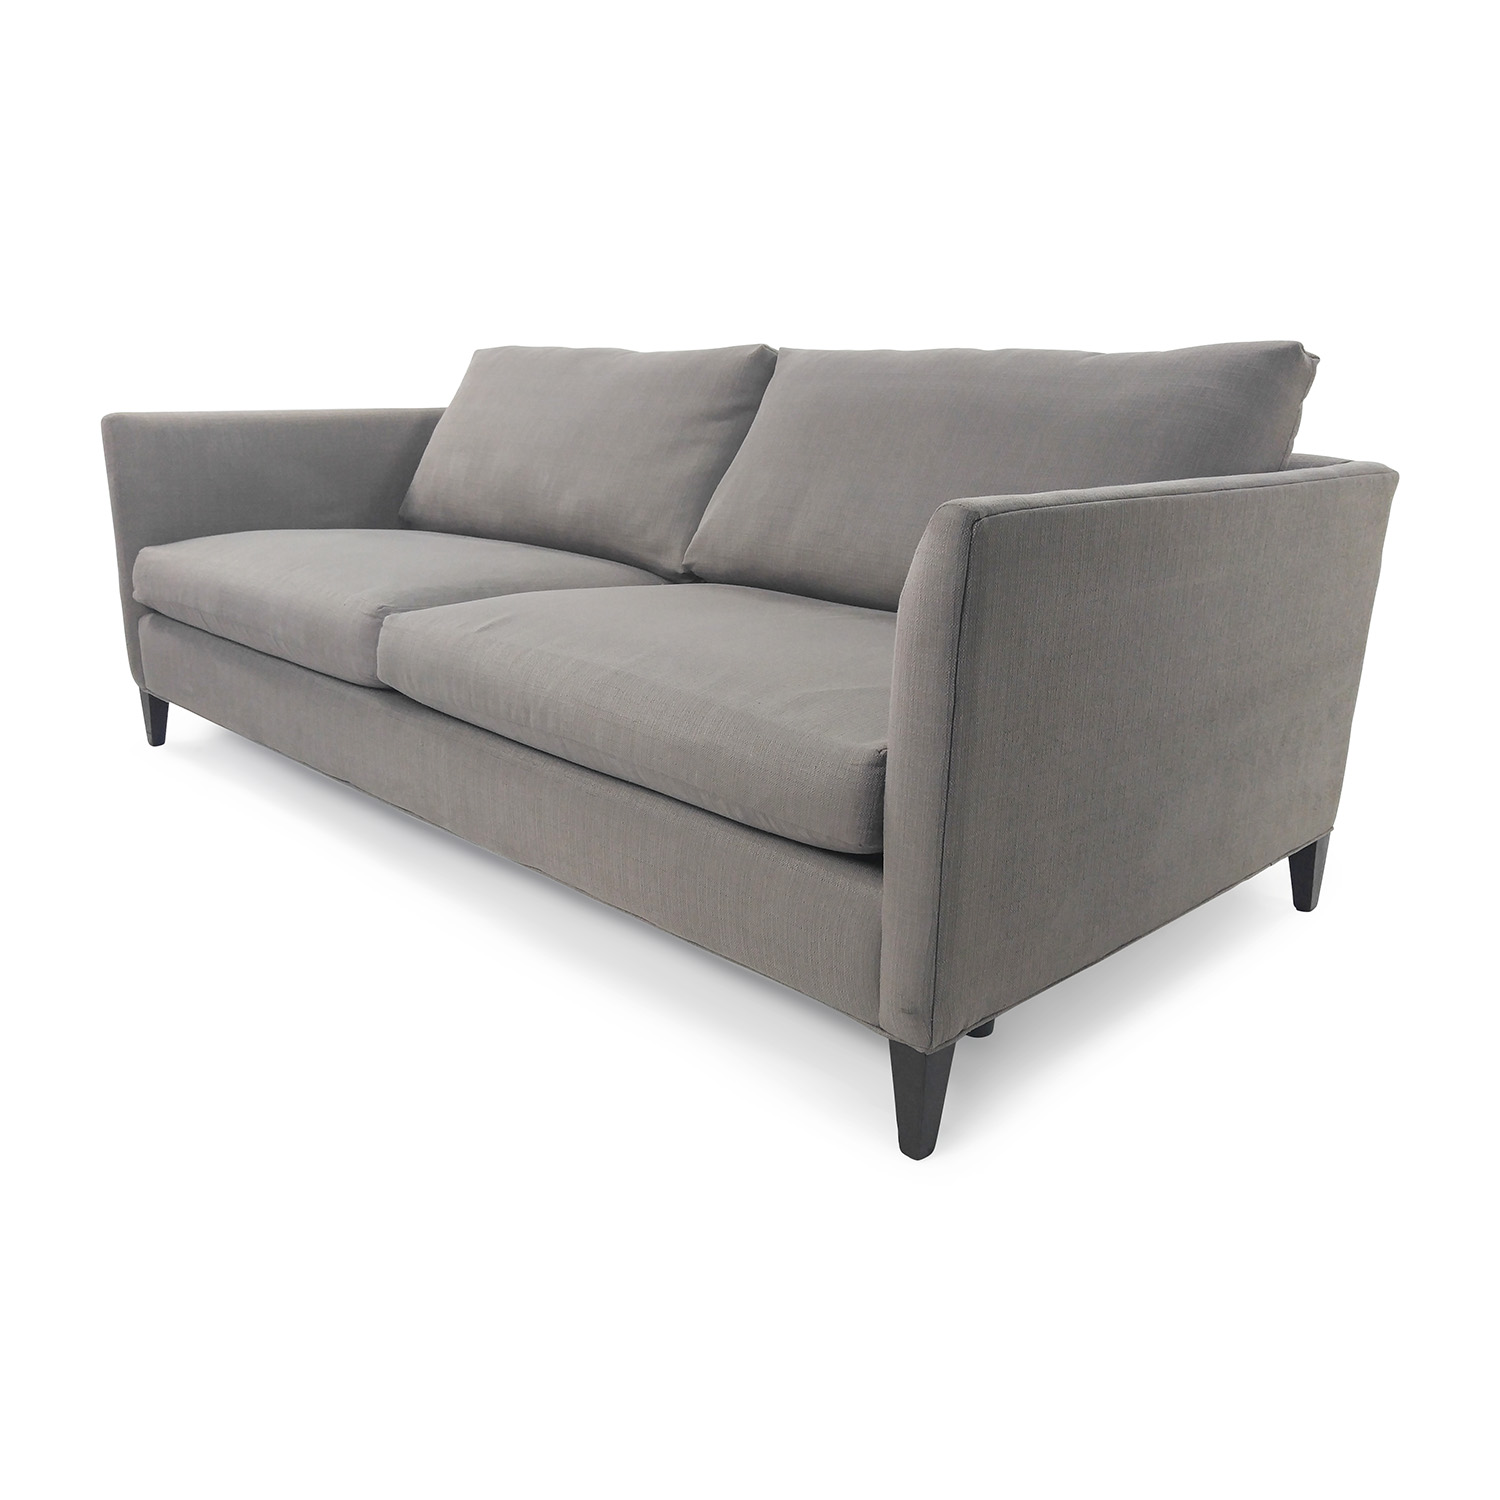 50% off - crate and barrel crate & barrel 3 seater sofa / sofas